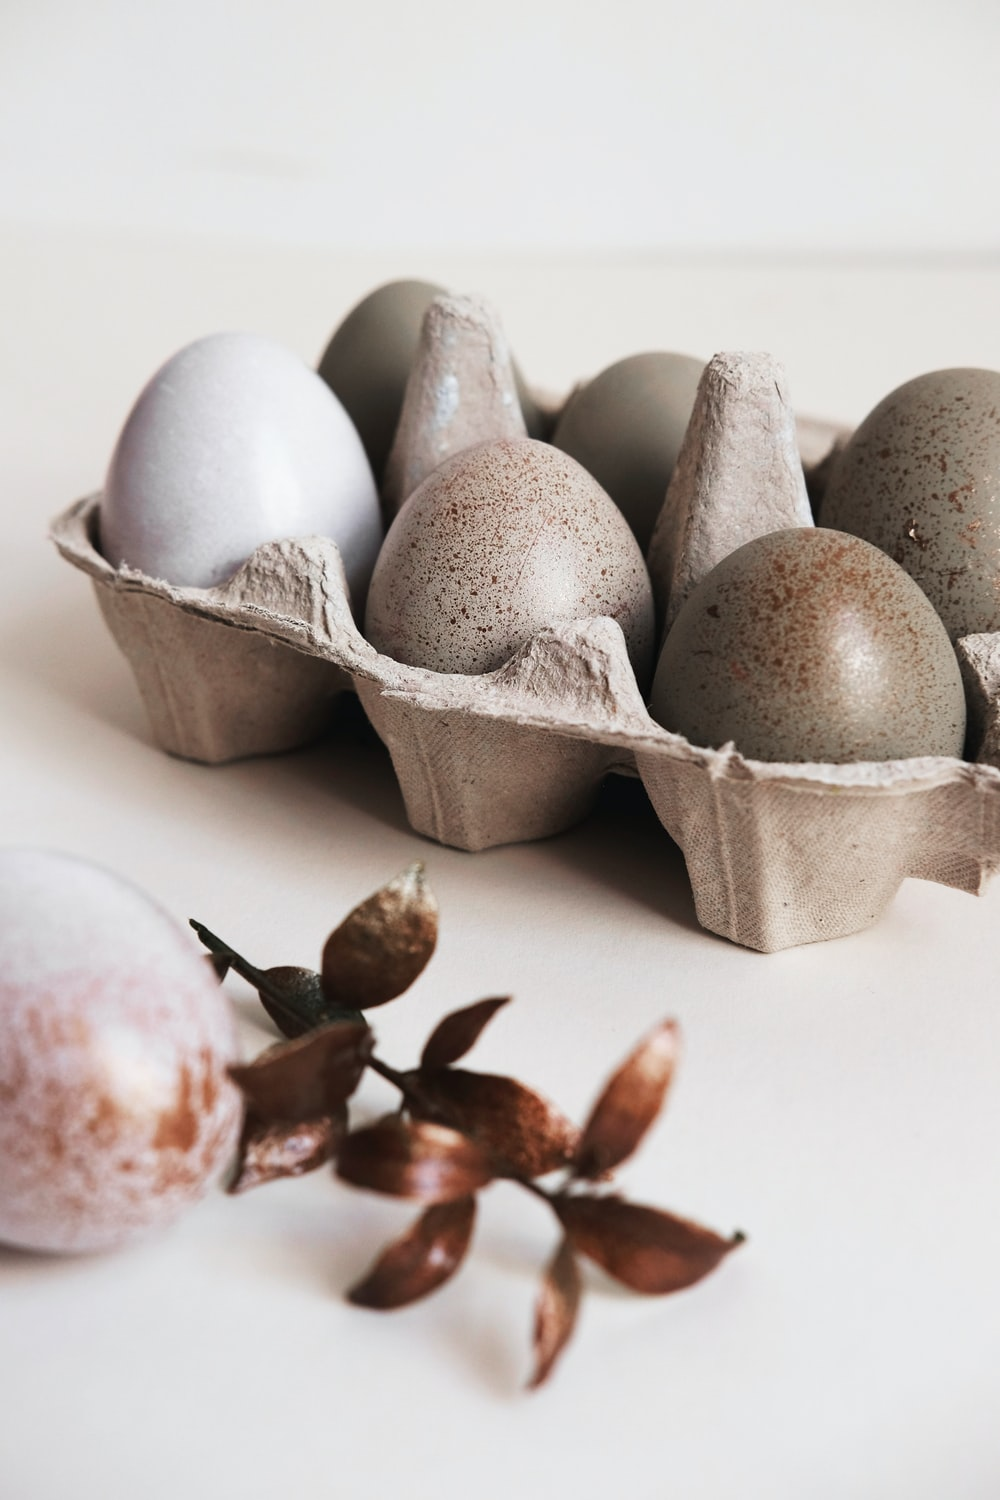 six gray poultry eggs on brown tray